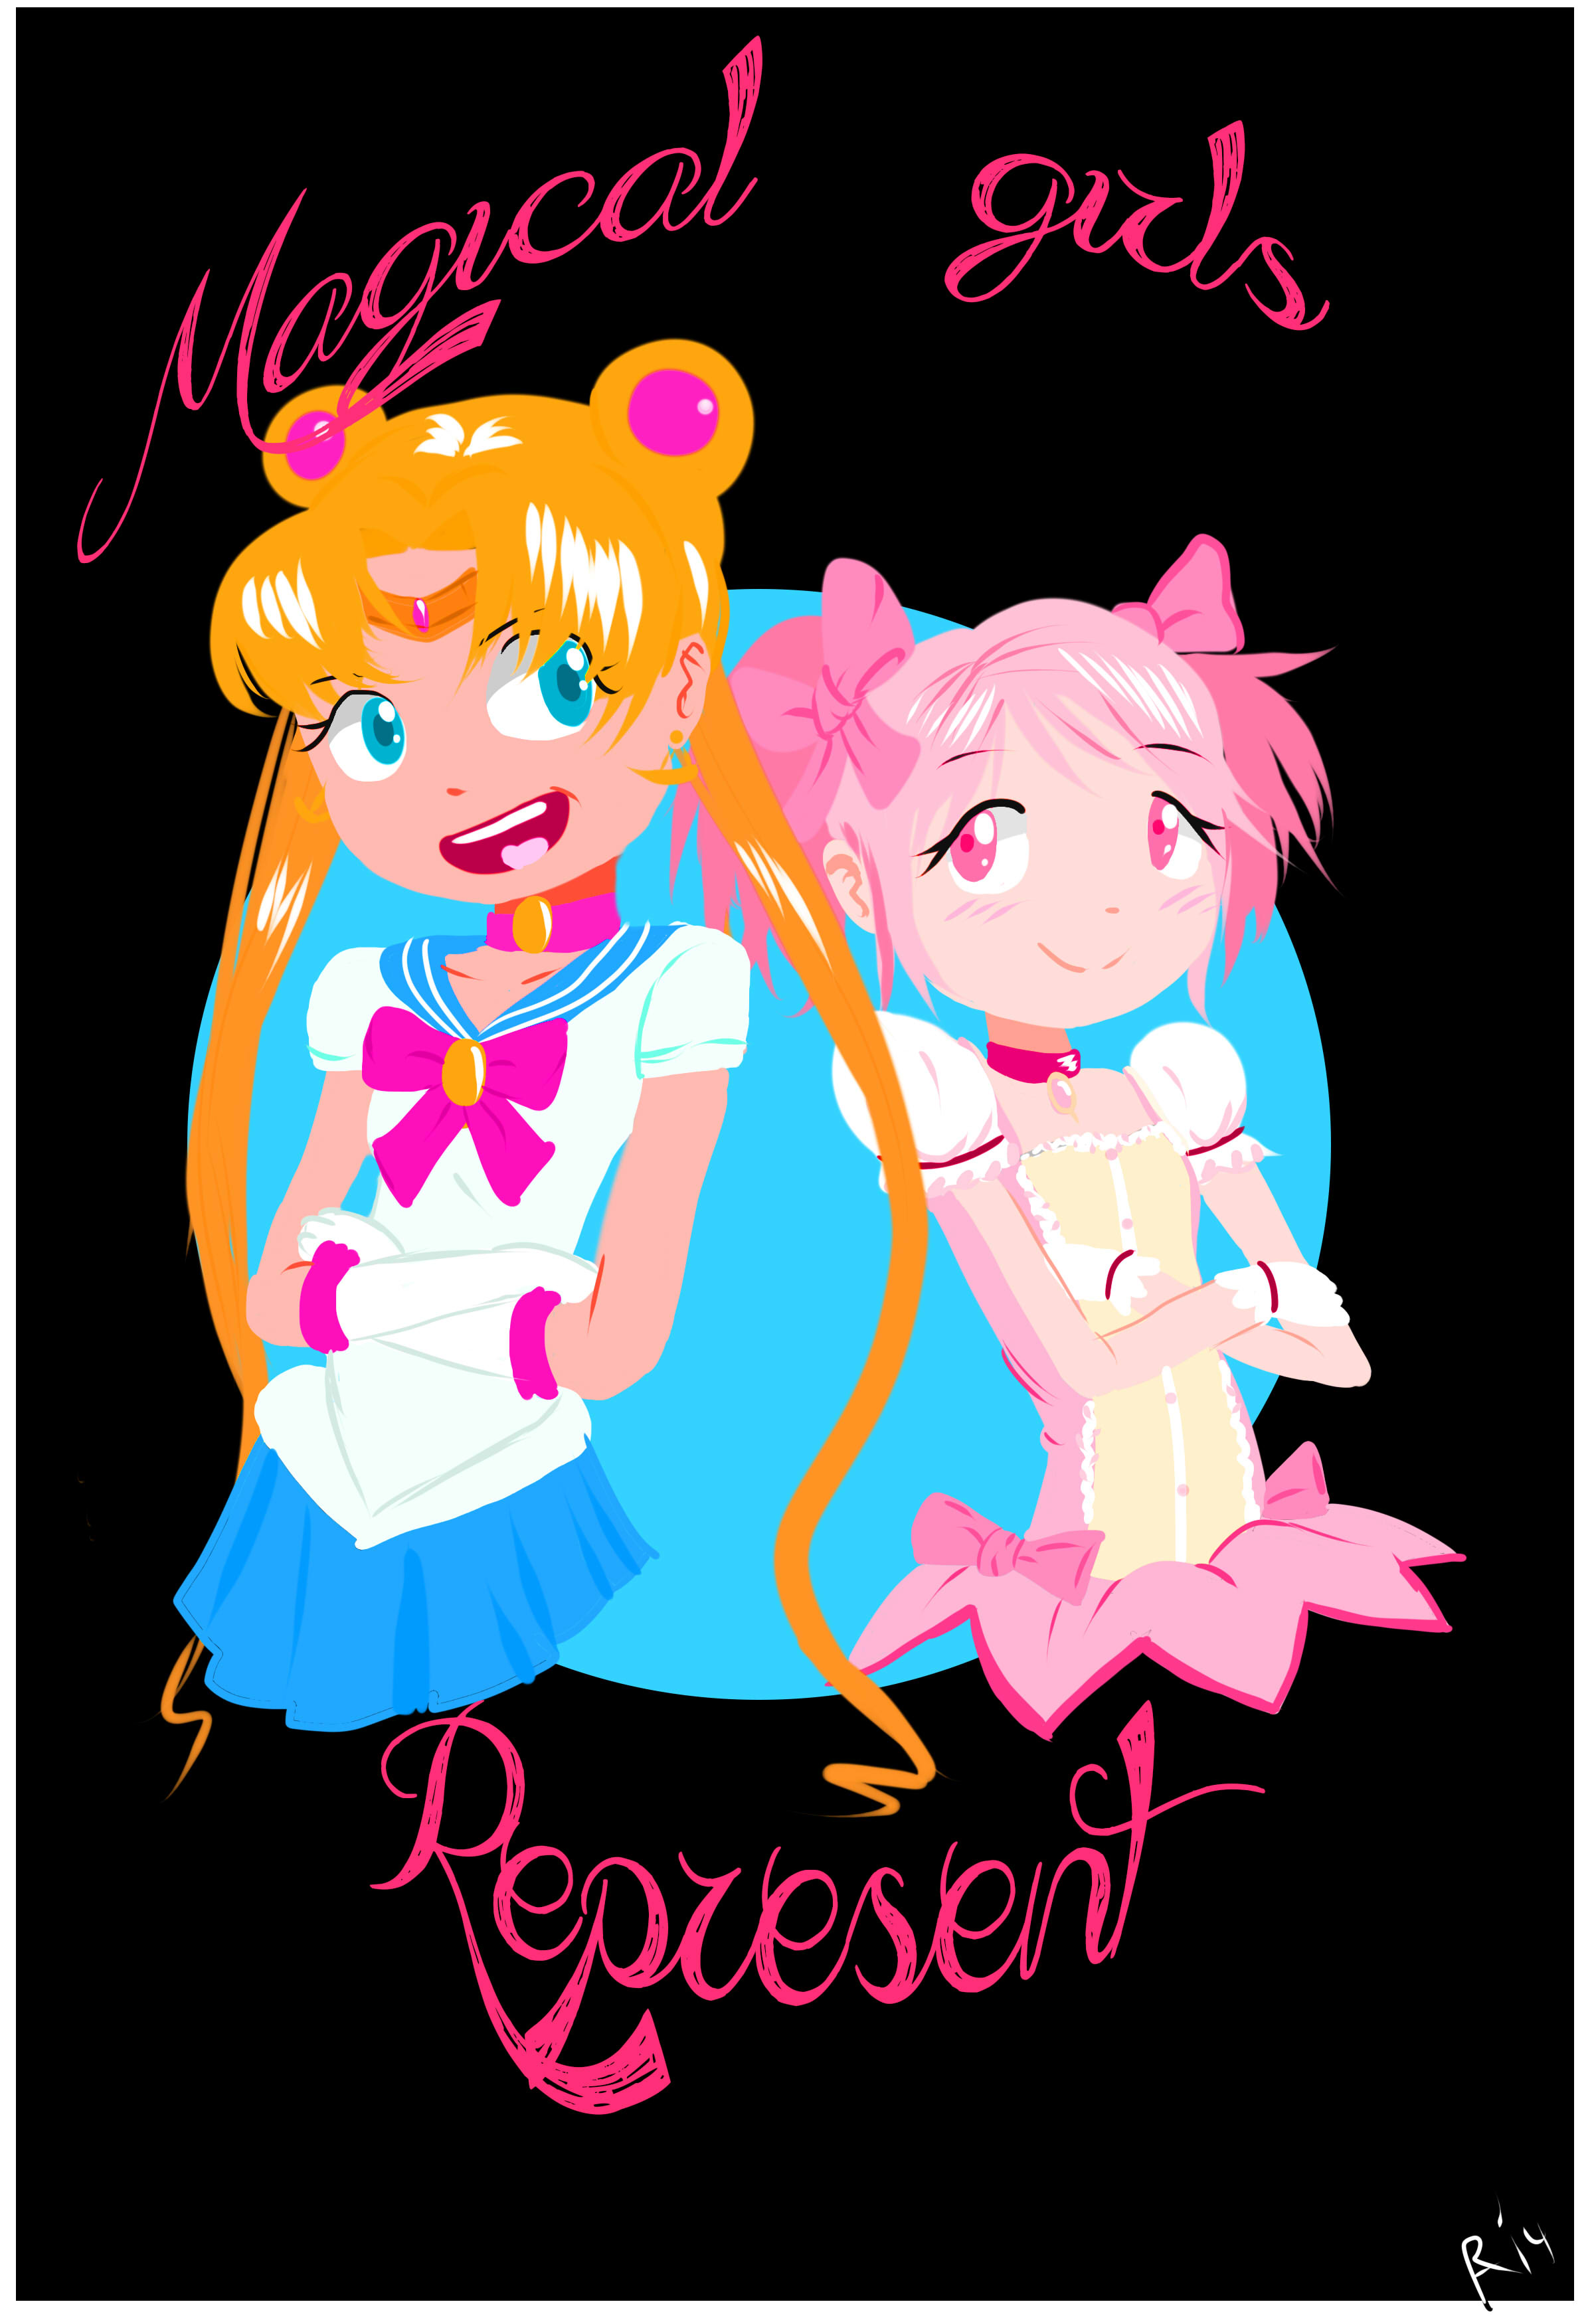 magical girls represent